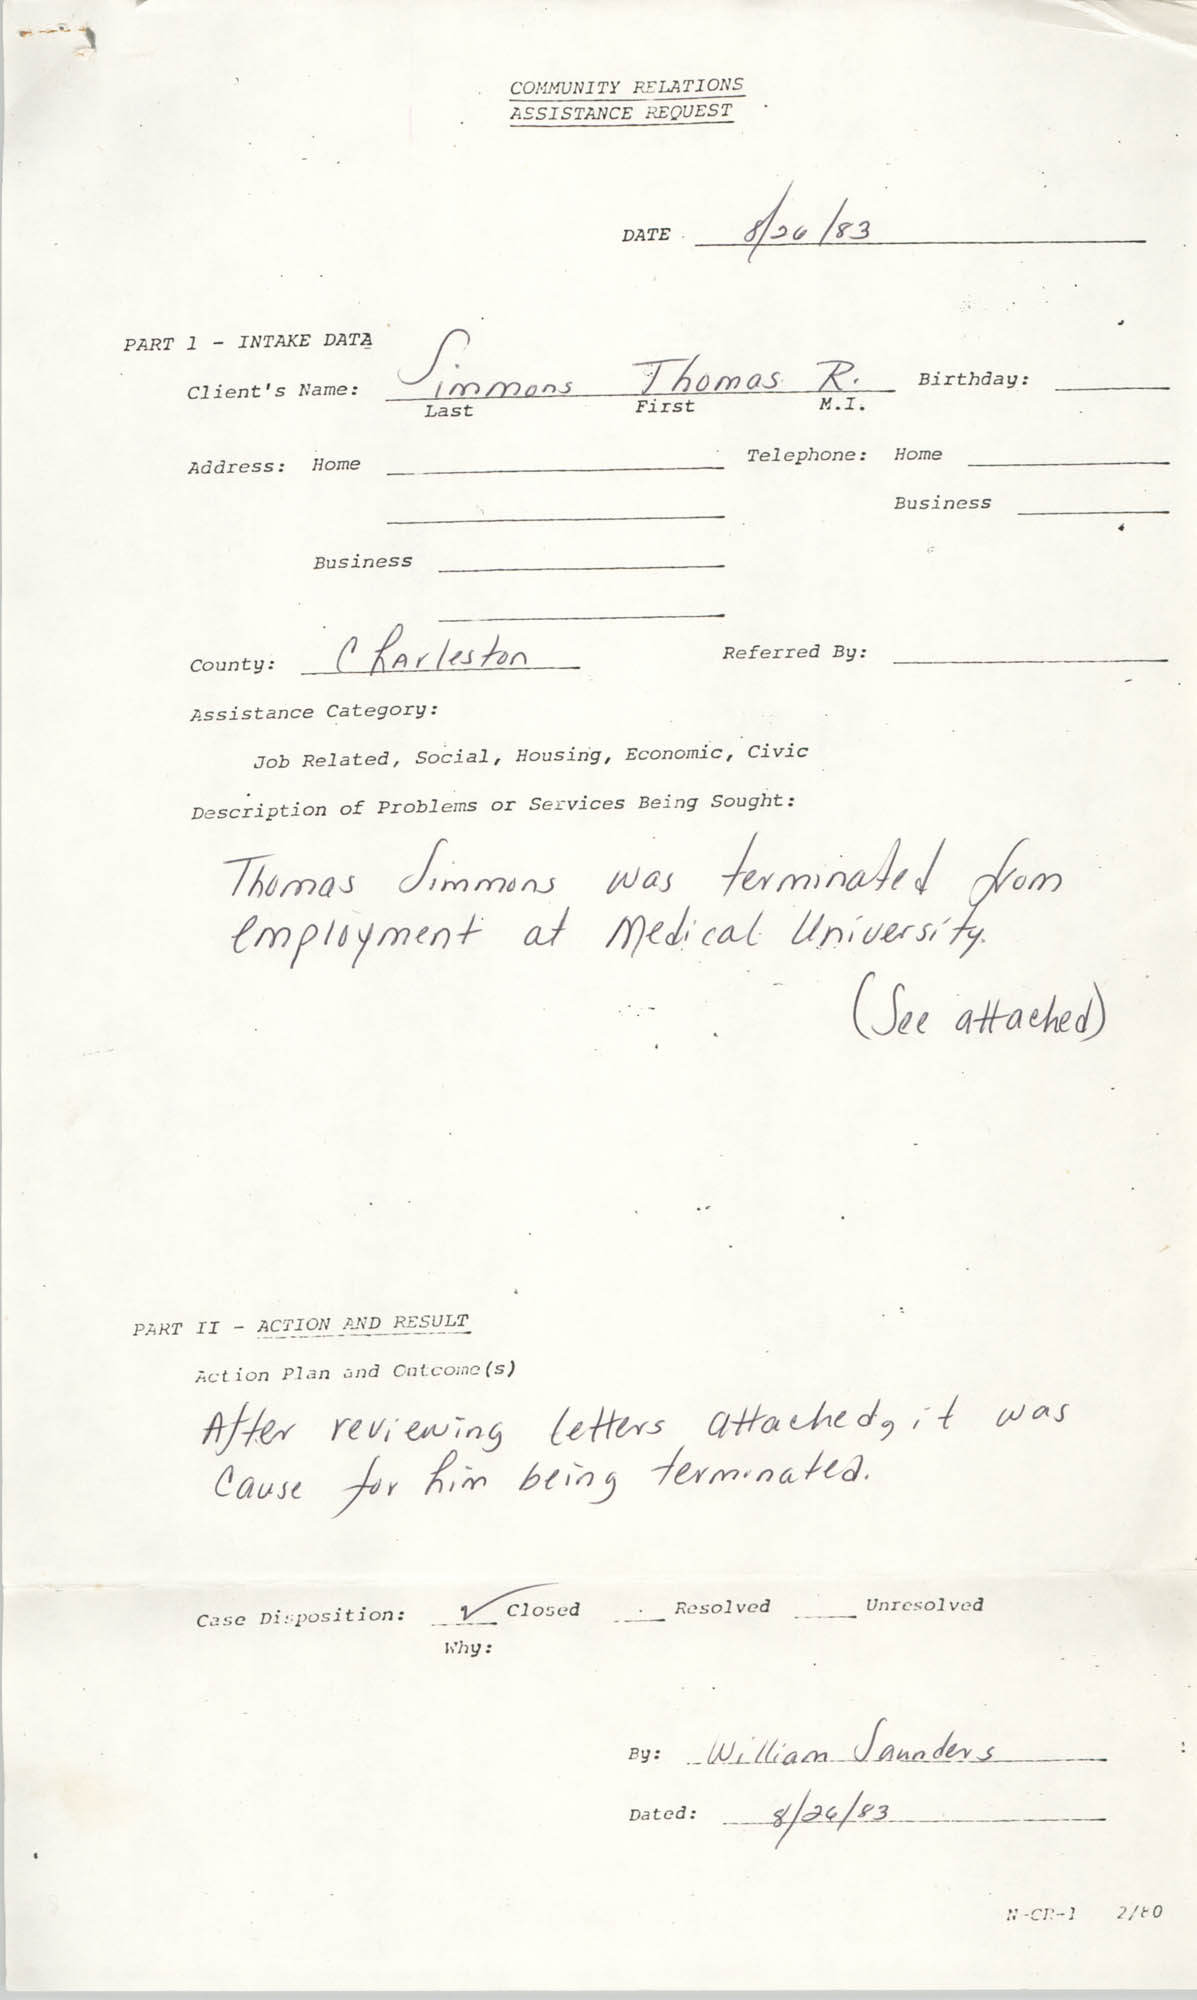 Community Relations Assistance Request, August 26, 1983